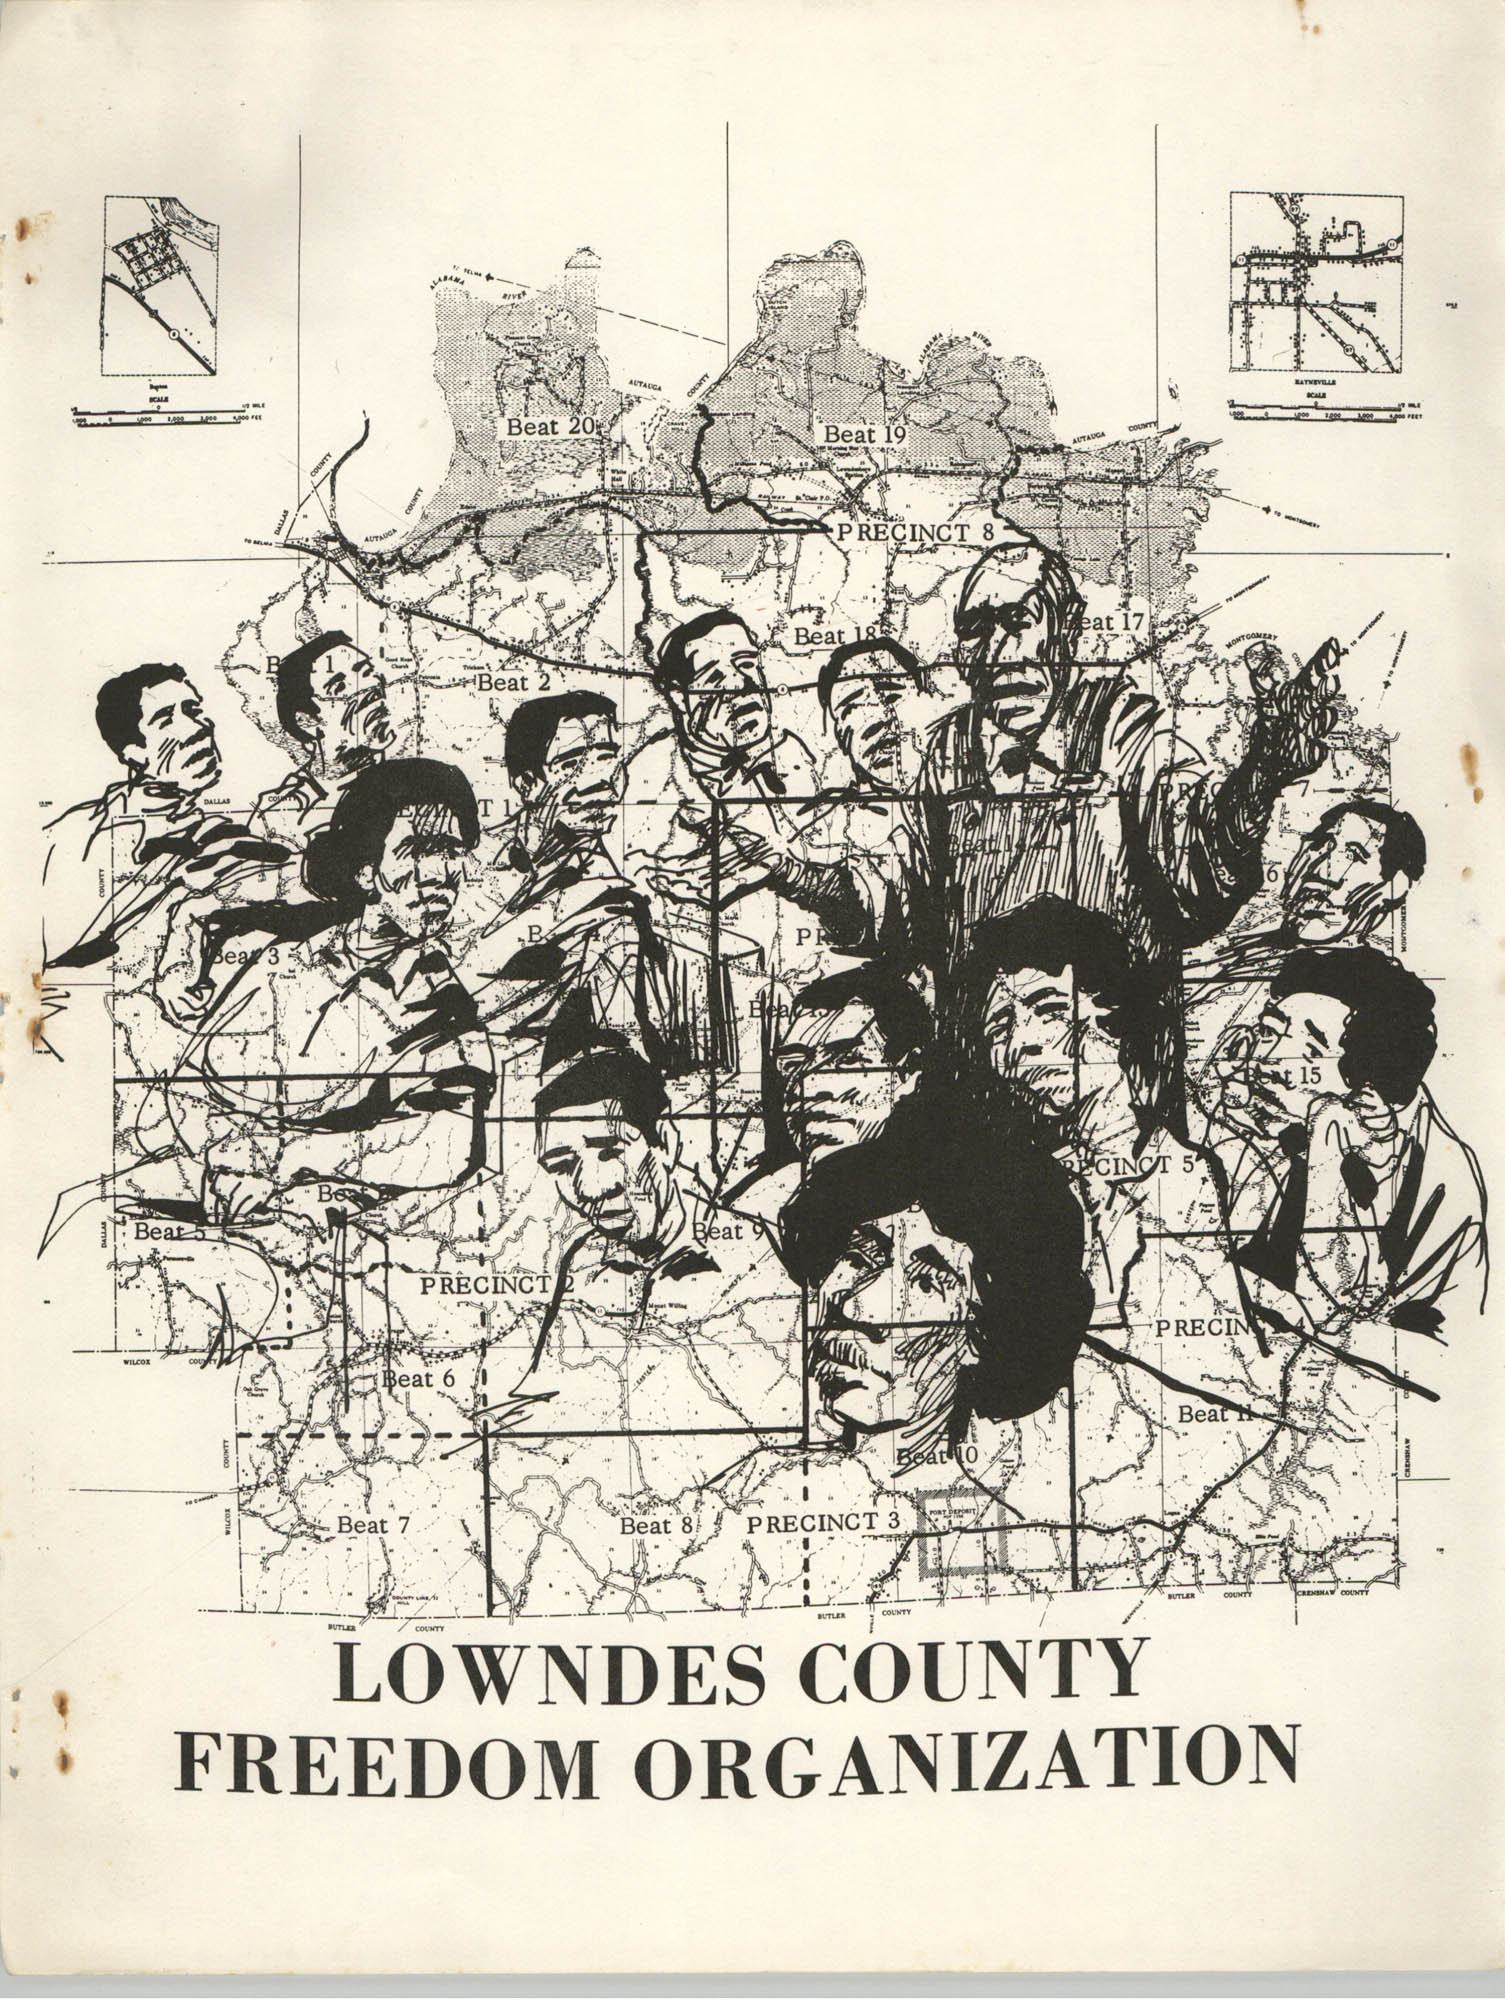 Lowndes County Freedom Organization Voting Pamphlet, Page 11